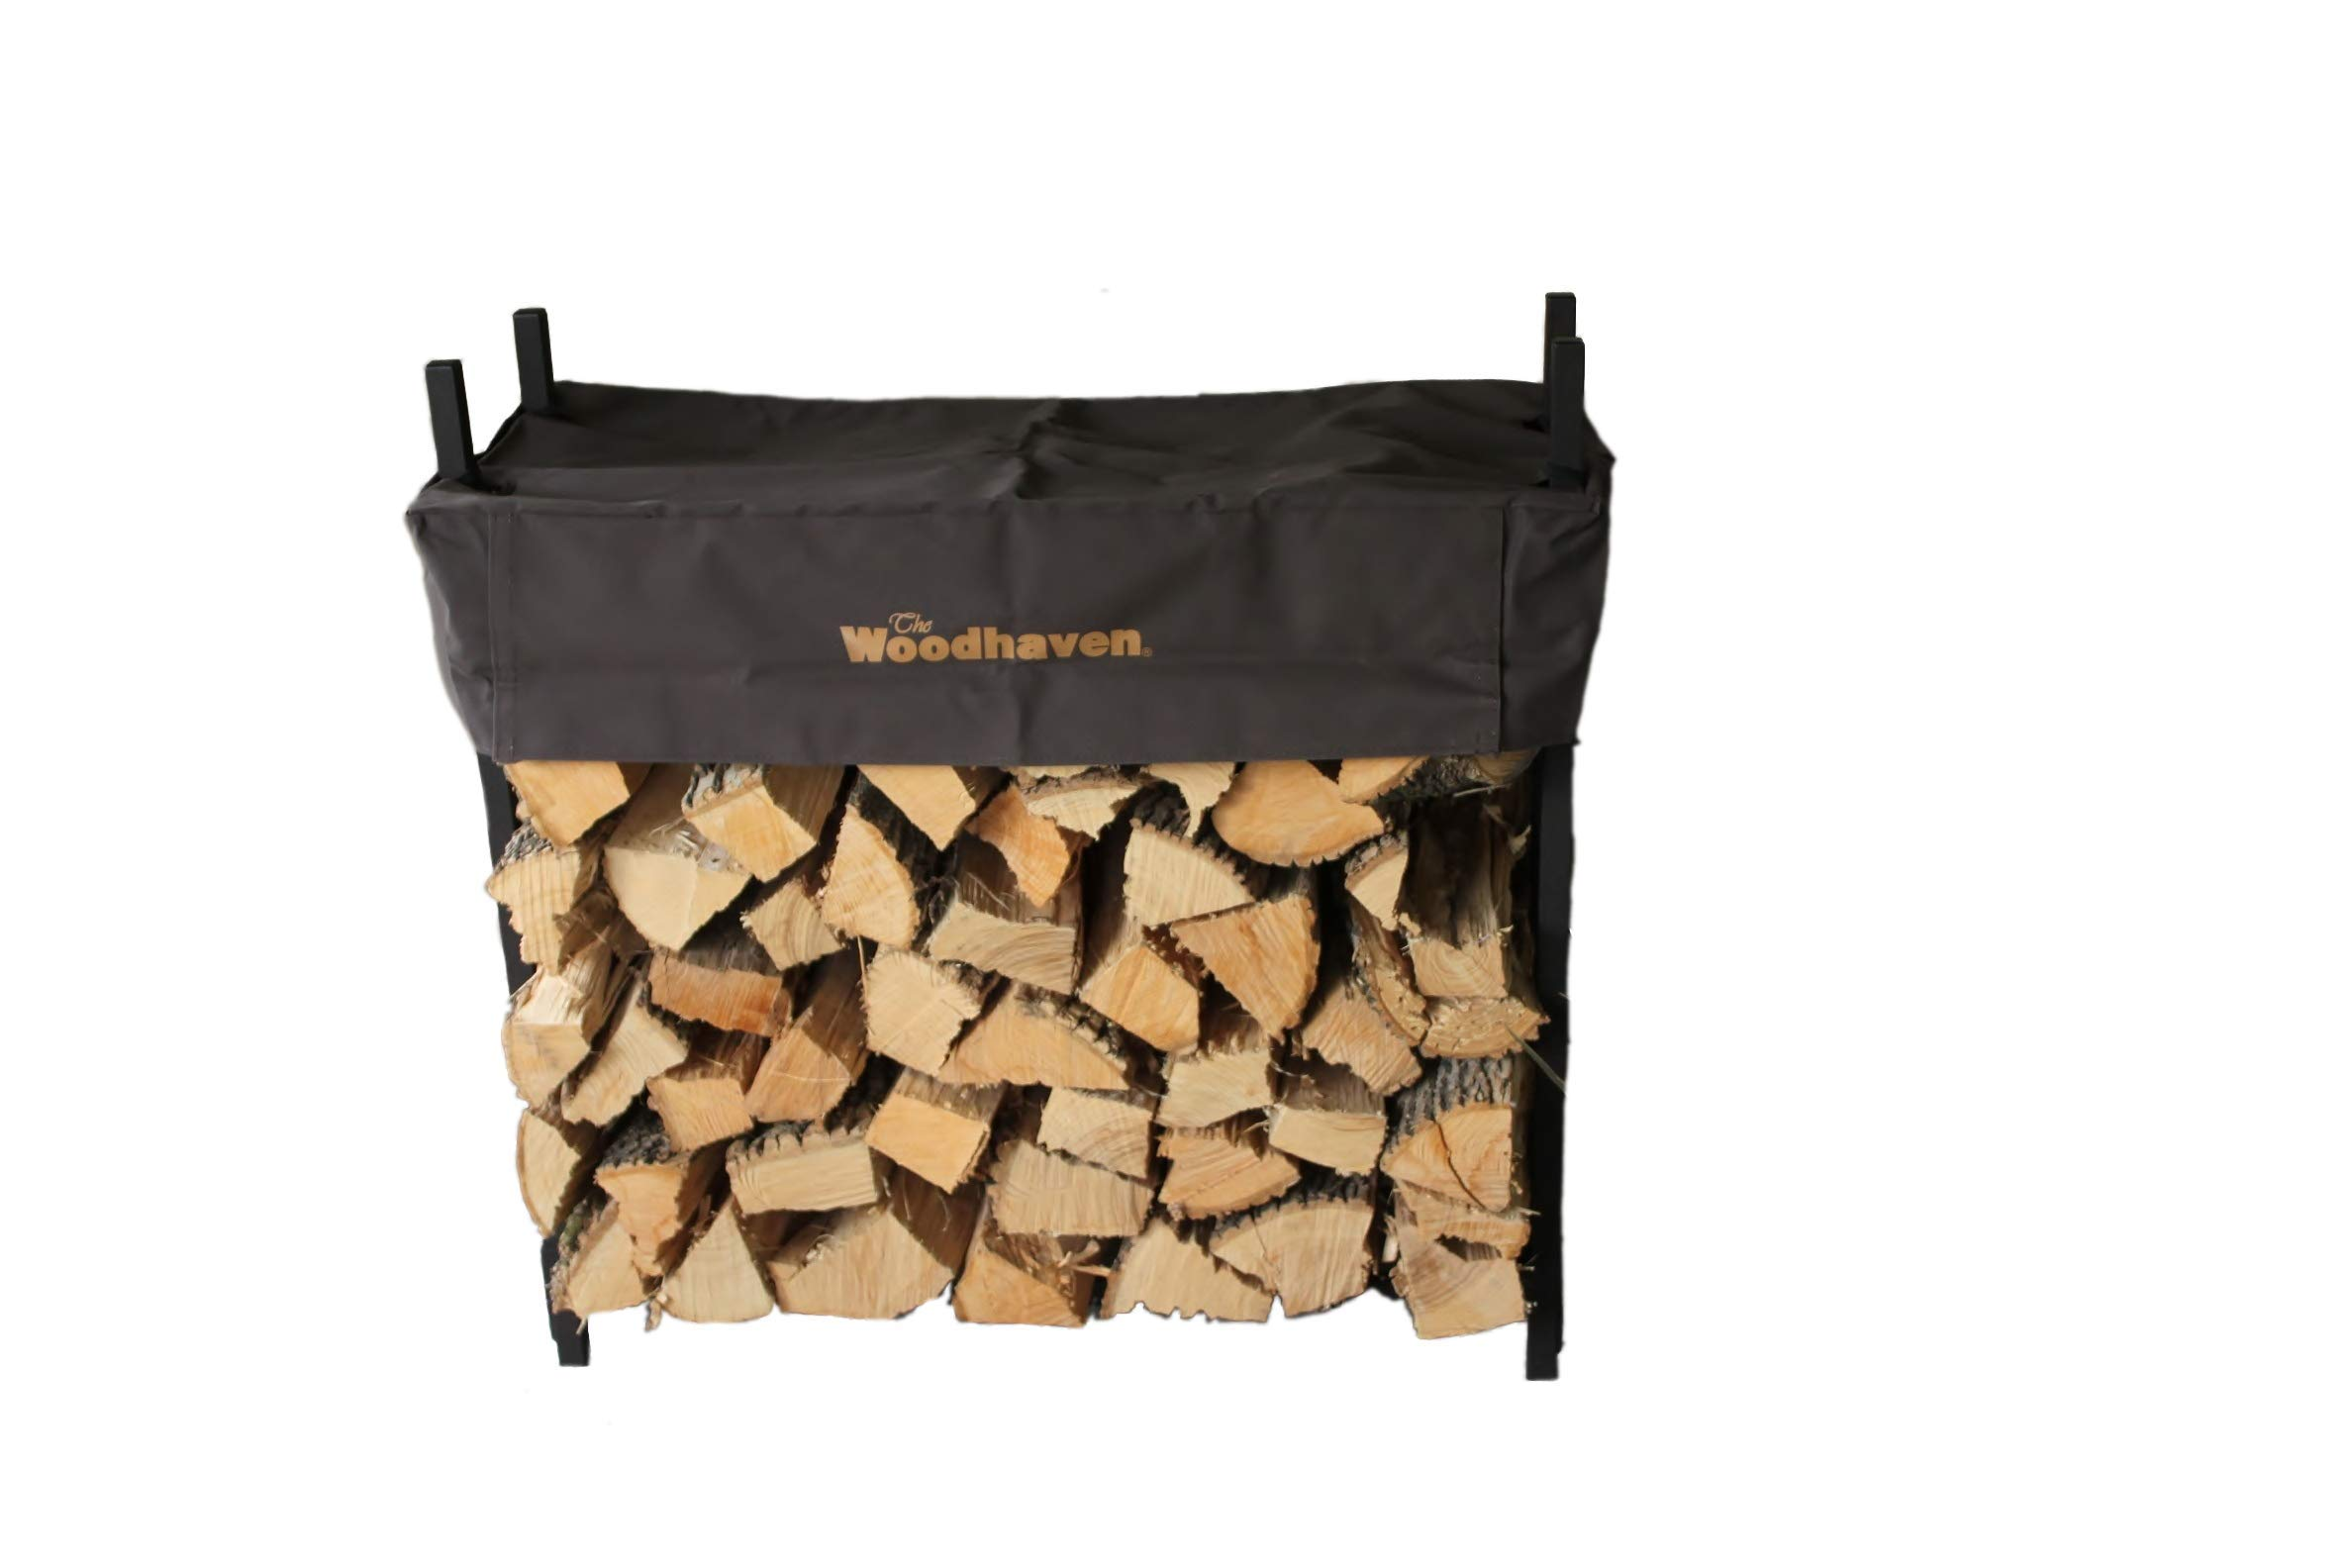 The Woodhaven 3 Foot Brown Firewood Log Rack with Cover